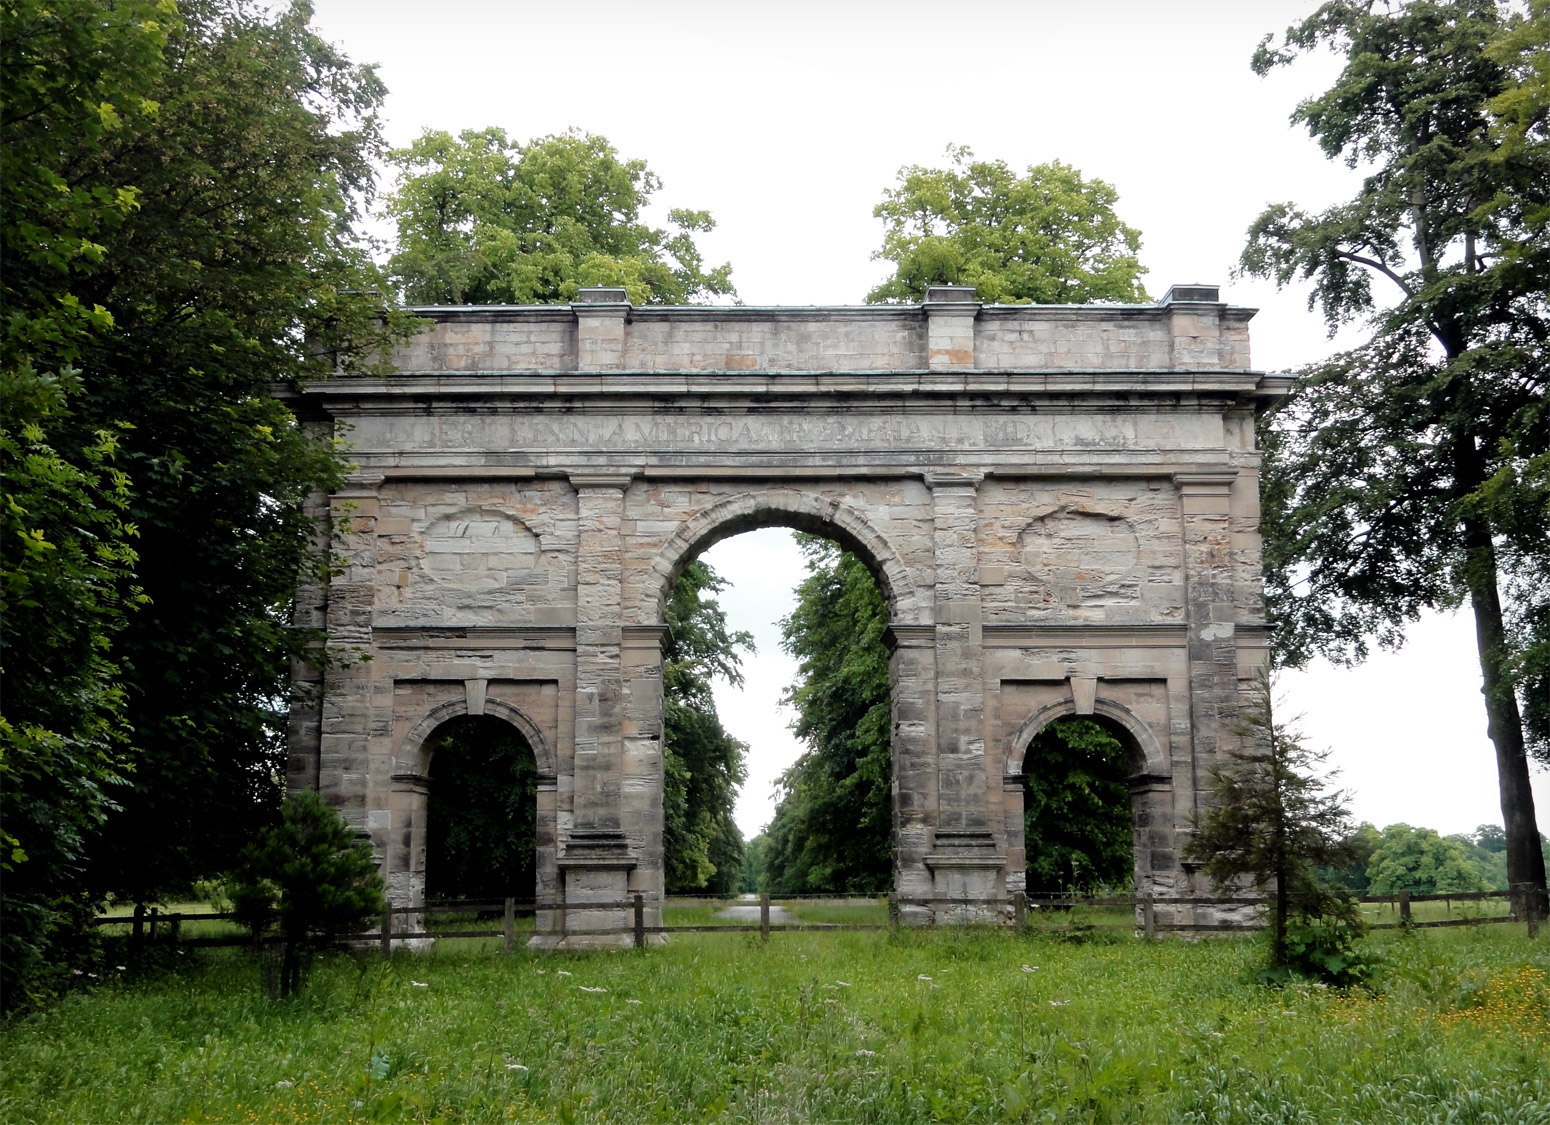 Triumphal Arch at the Parlington Estate